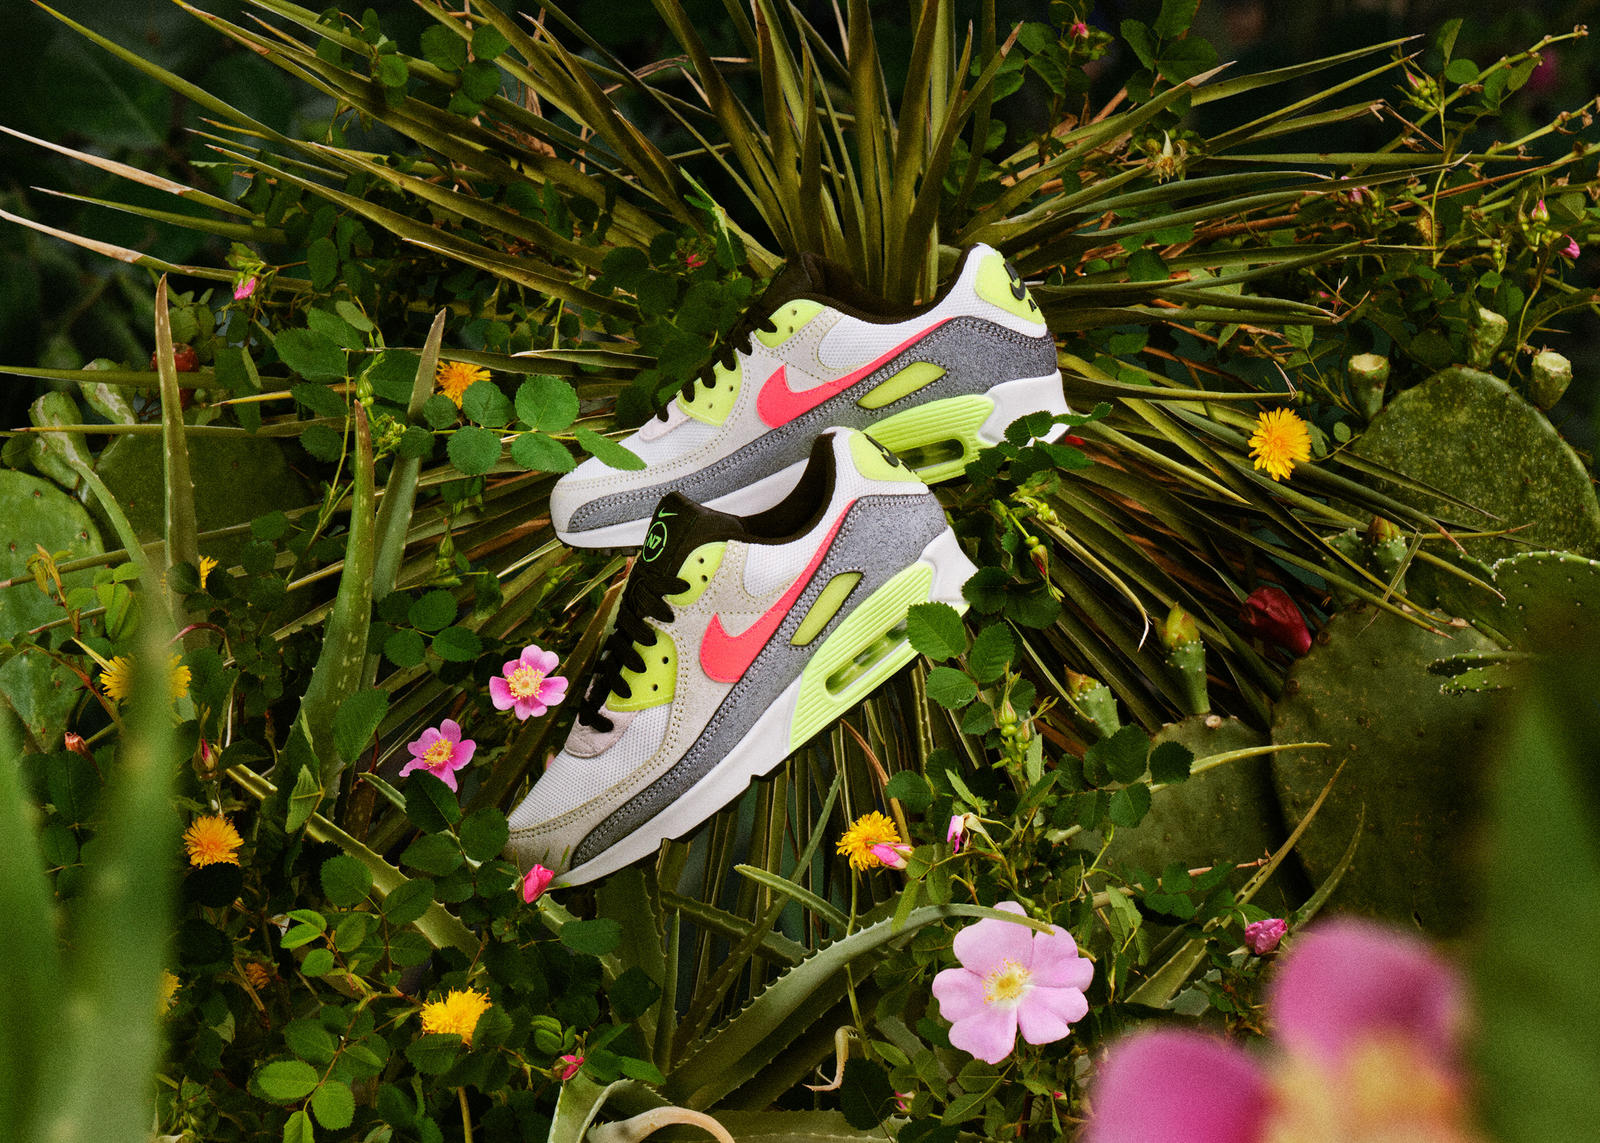 Nike N7 Summer 2020 Footwear and Apparel Official Images and Release Date 2 5